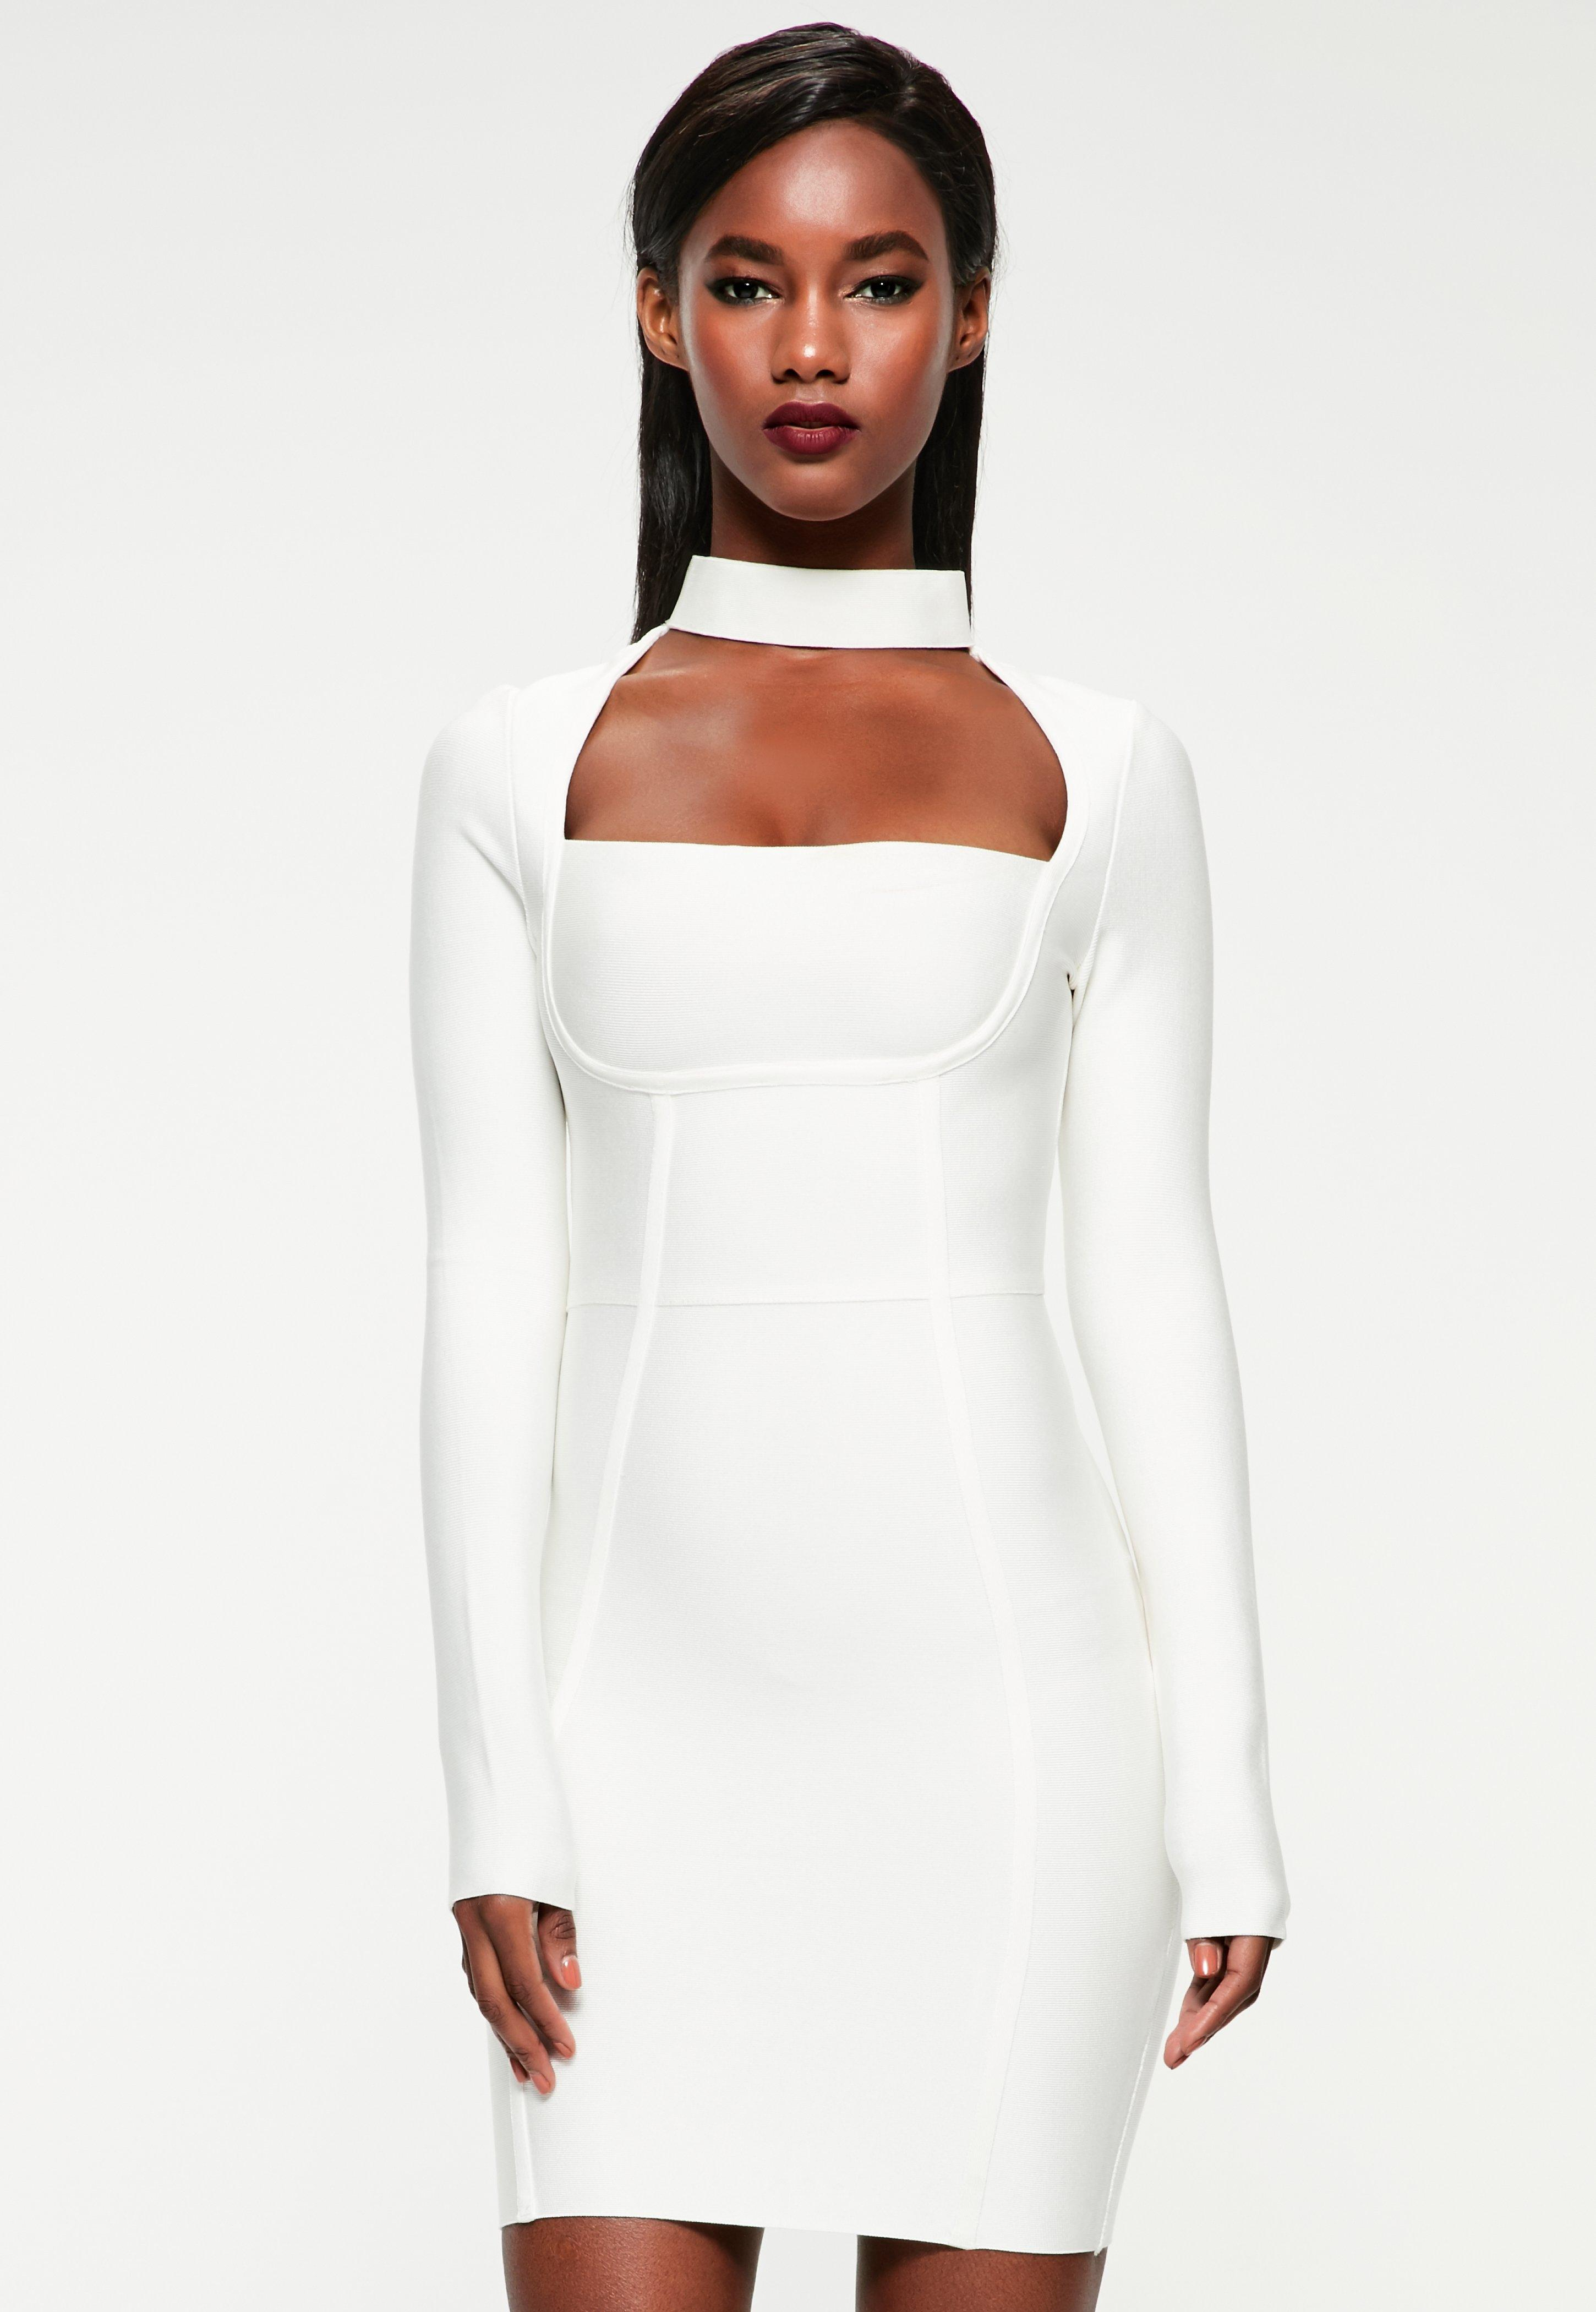 Wedding White Graduation Dresses graduation dresses and ball gowns missguided peace love white choker neck bandage bodycon dress